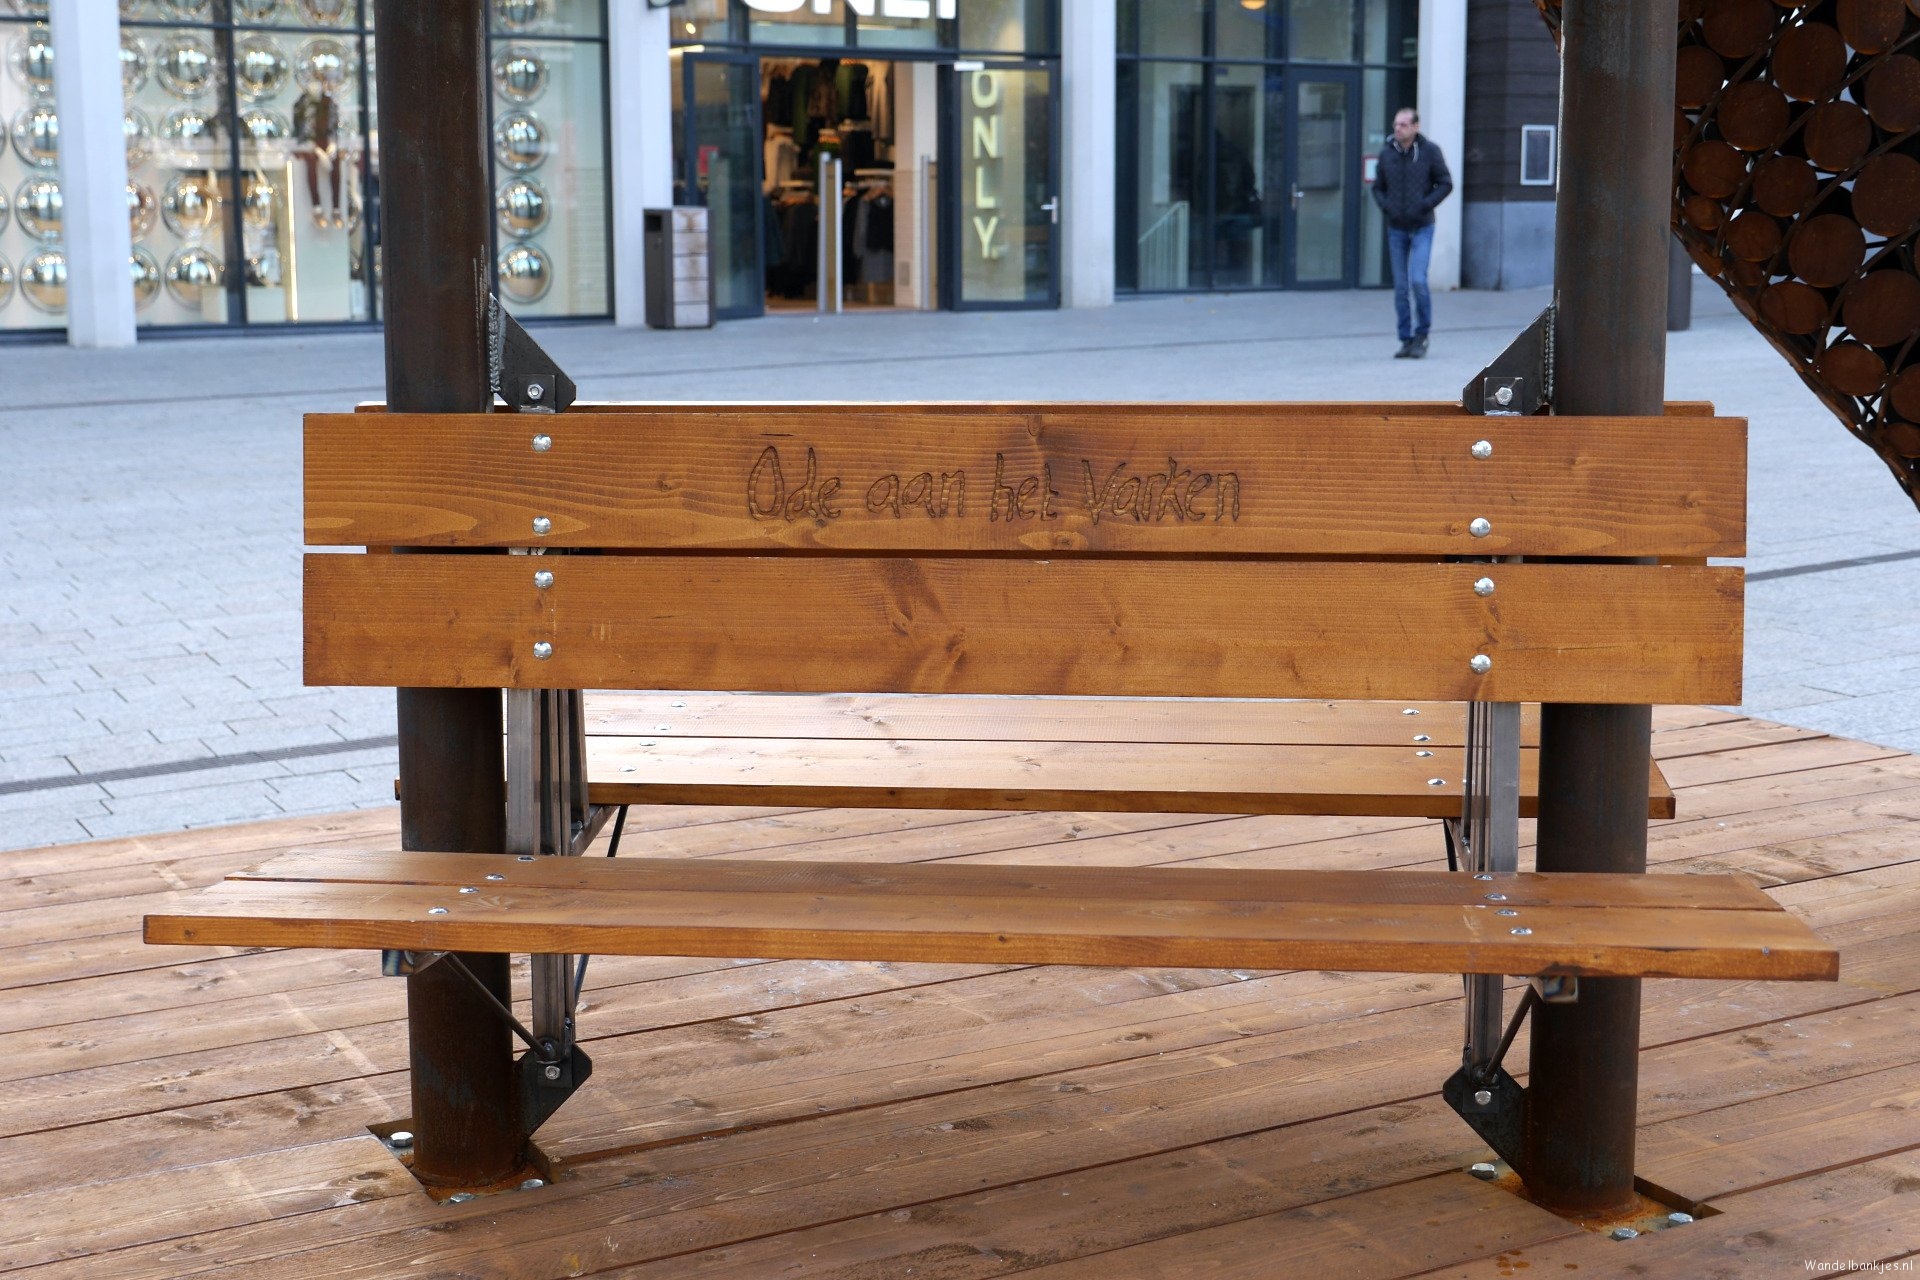 rt-arthurskm-inscription-on-the-benches-under-the-temporary-pig-in-nijmegen-on-square-1944-walking benches-walkersbenches-https-t-co-f